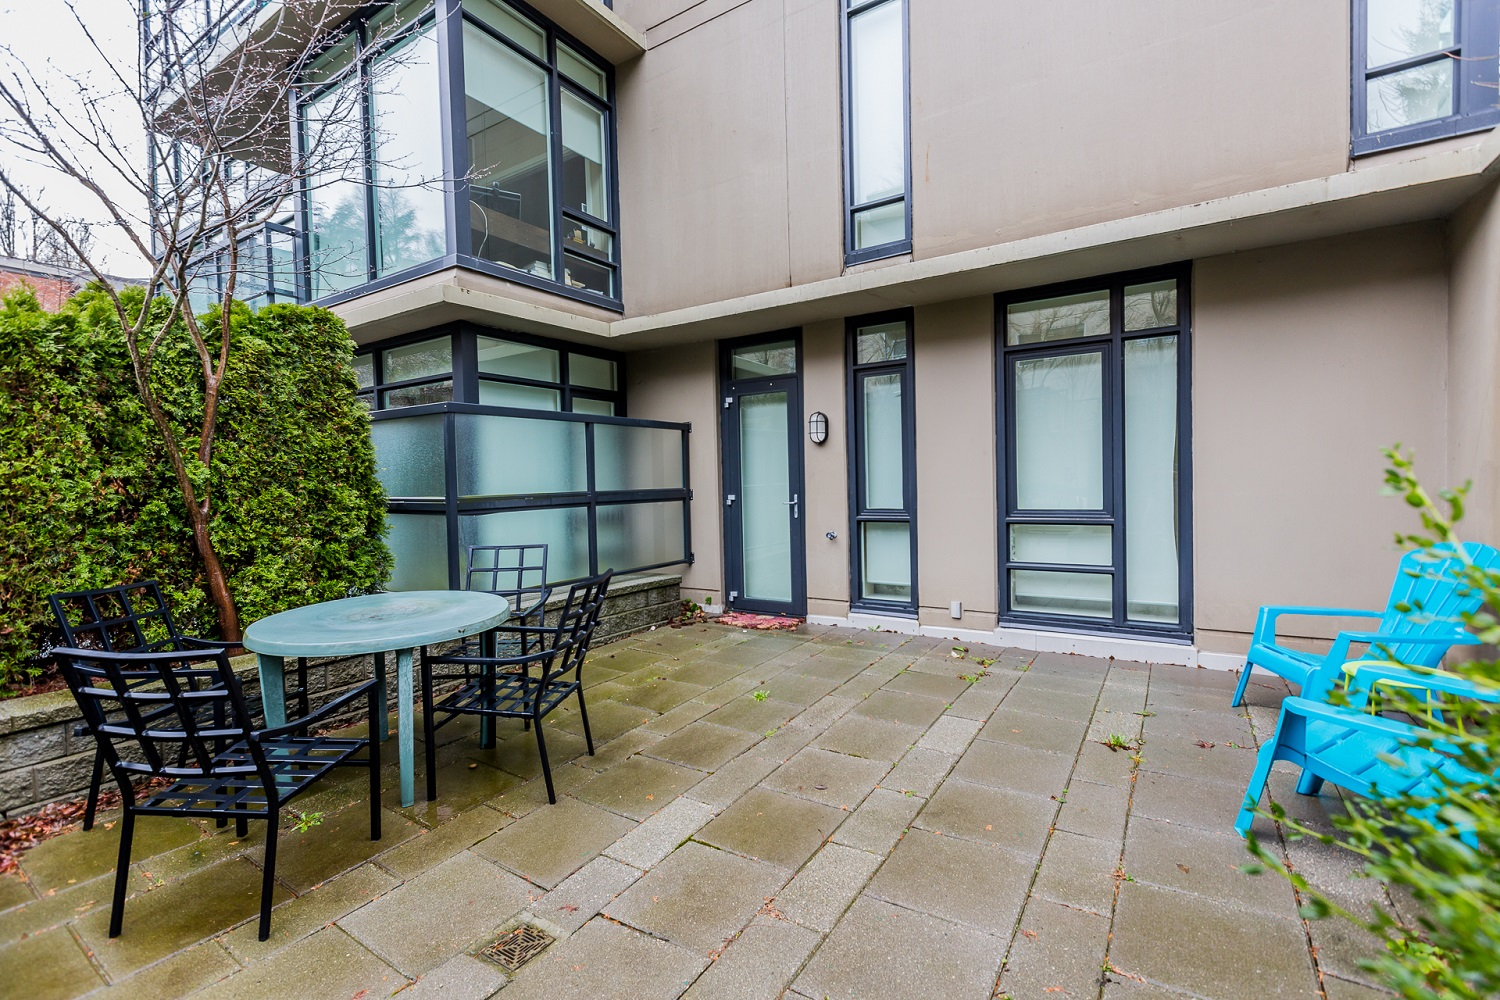 Private patio - Fairview - 1468 West 14th Avenue, Vancouver BC Canada